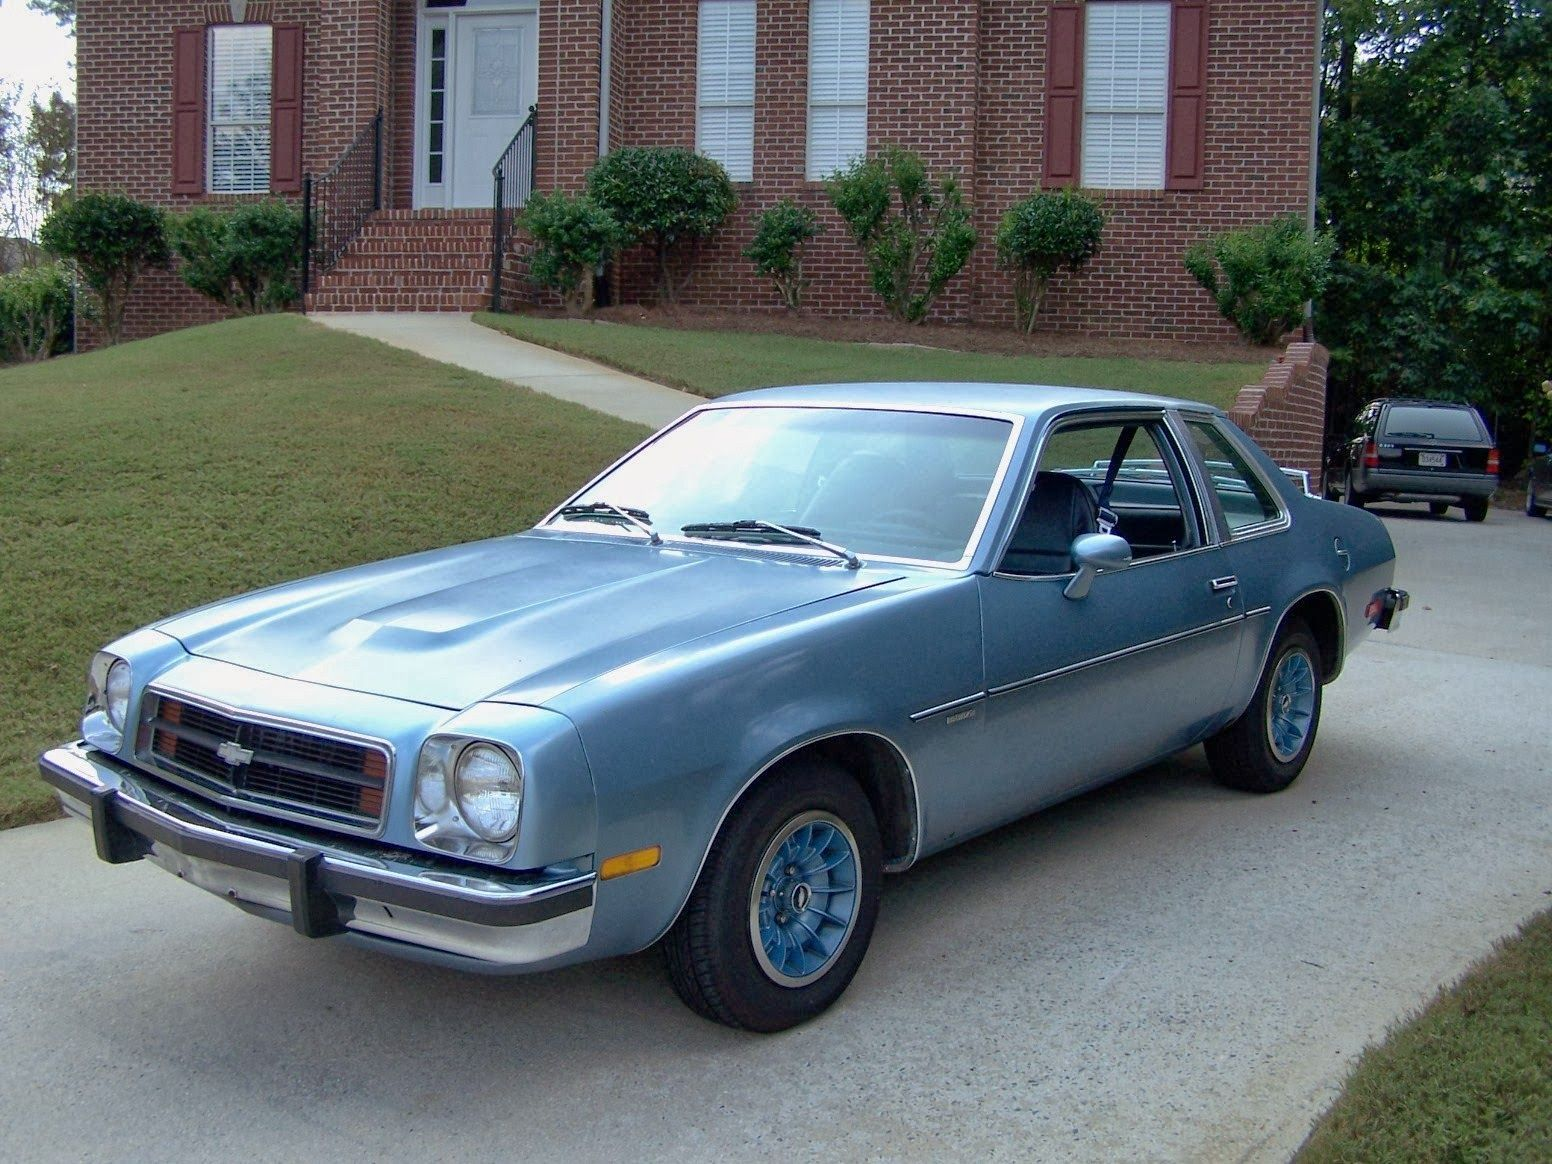 All Chevy 1977 chevrolet monza : blue chevy monza | Oddimotive™: Where have all the Monzas gone ...